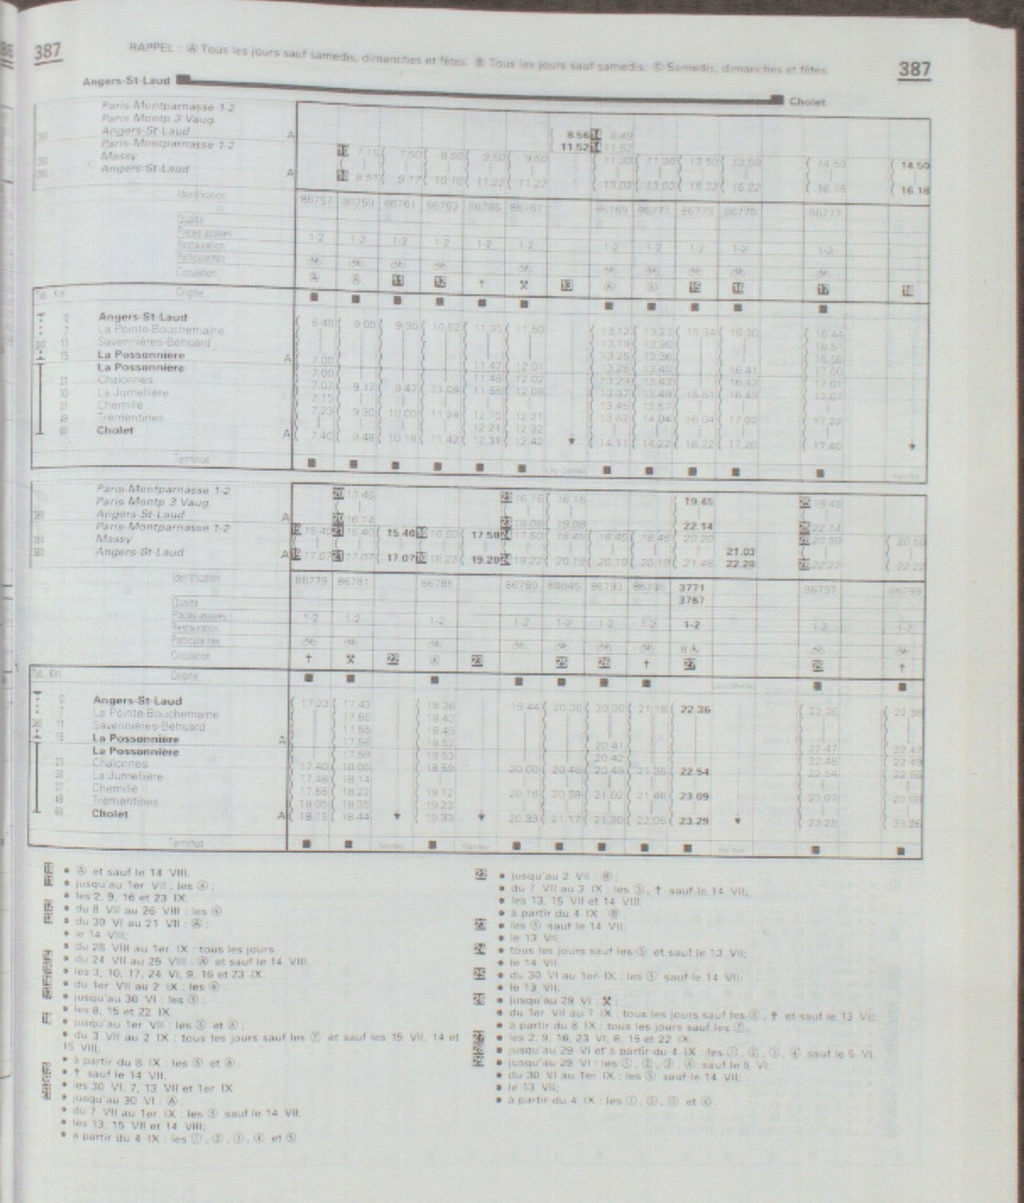 horaires Angers Cholet extraits Chaix 1966 - 1971 - 1974 - 1980 Chaix_48